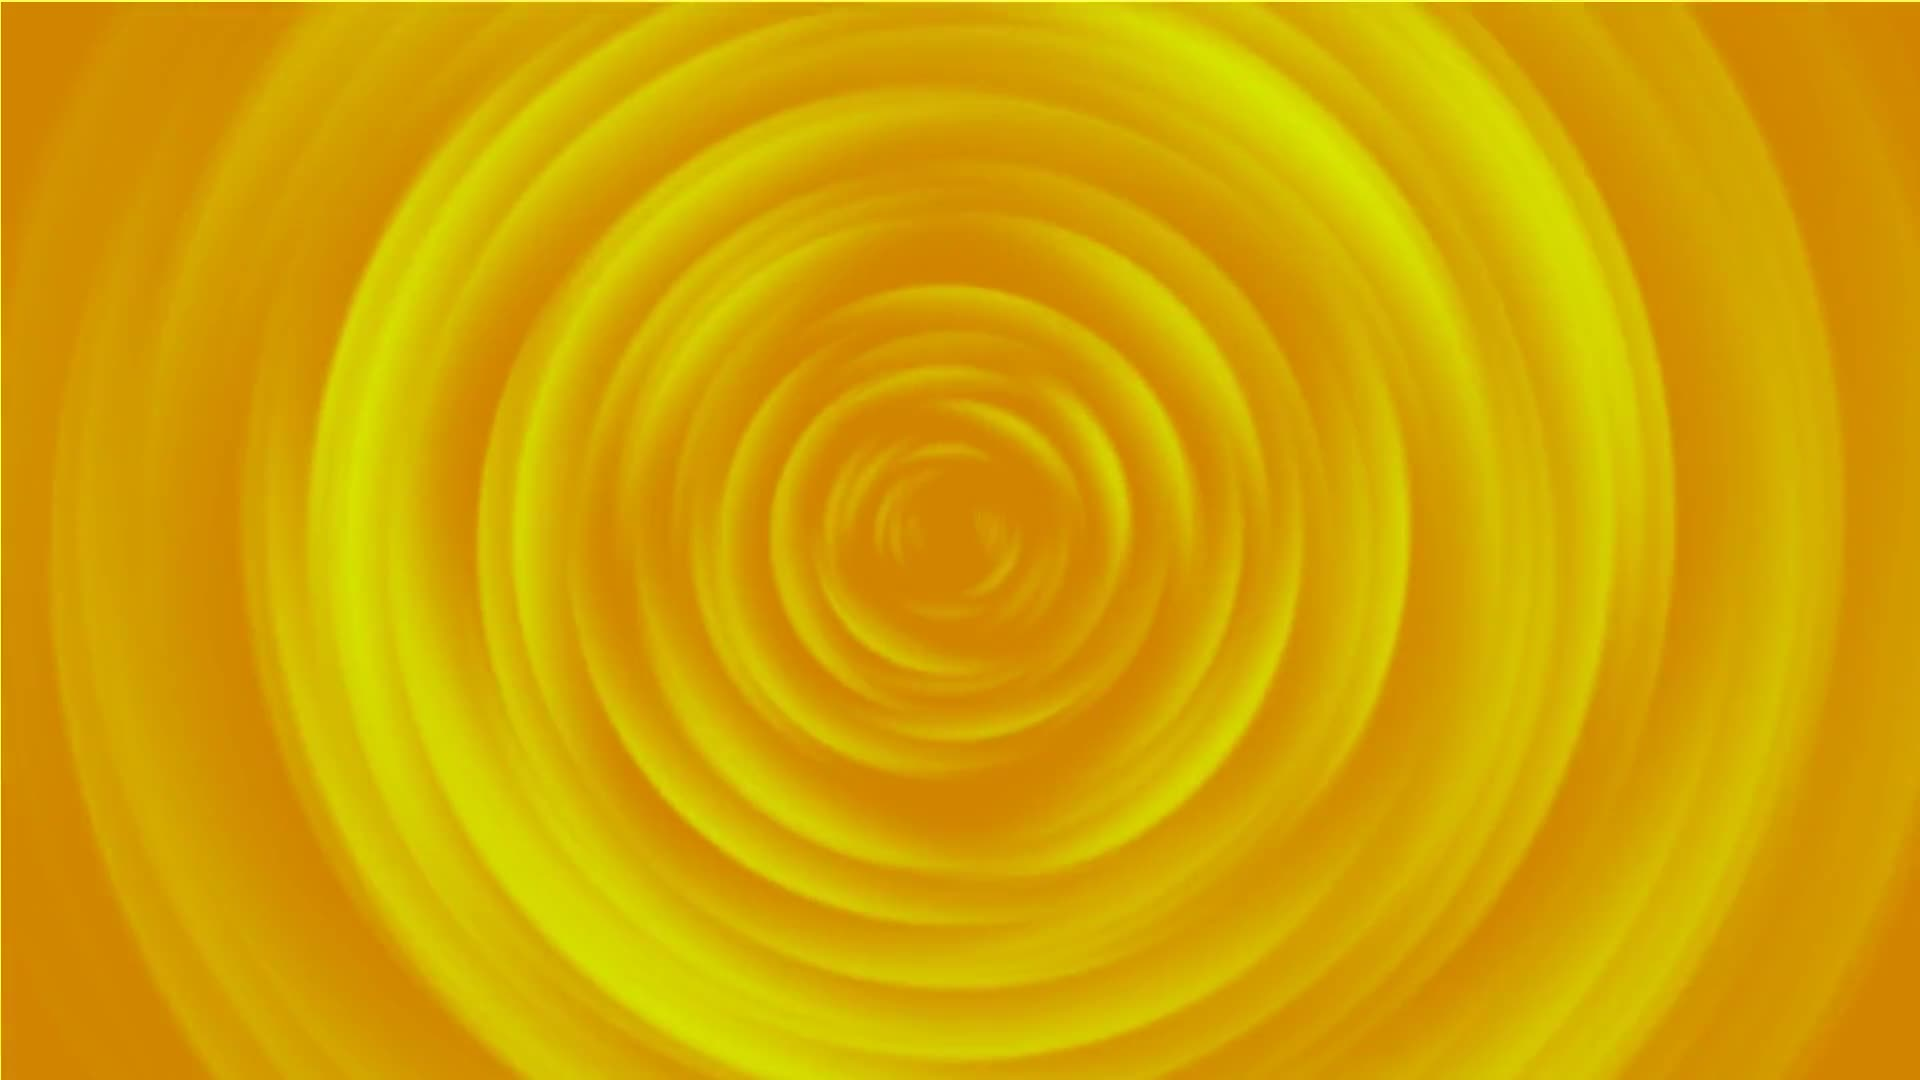 Swirl yellow design motion color